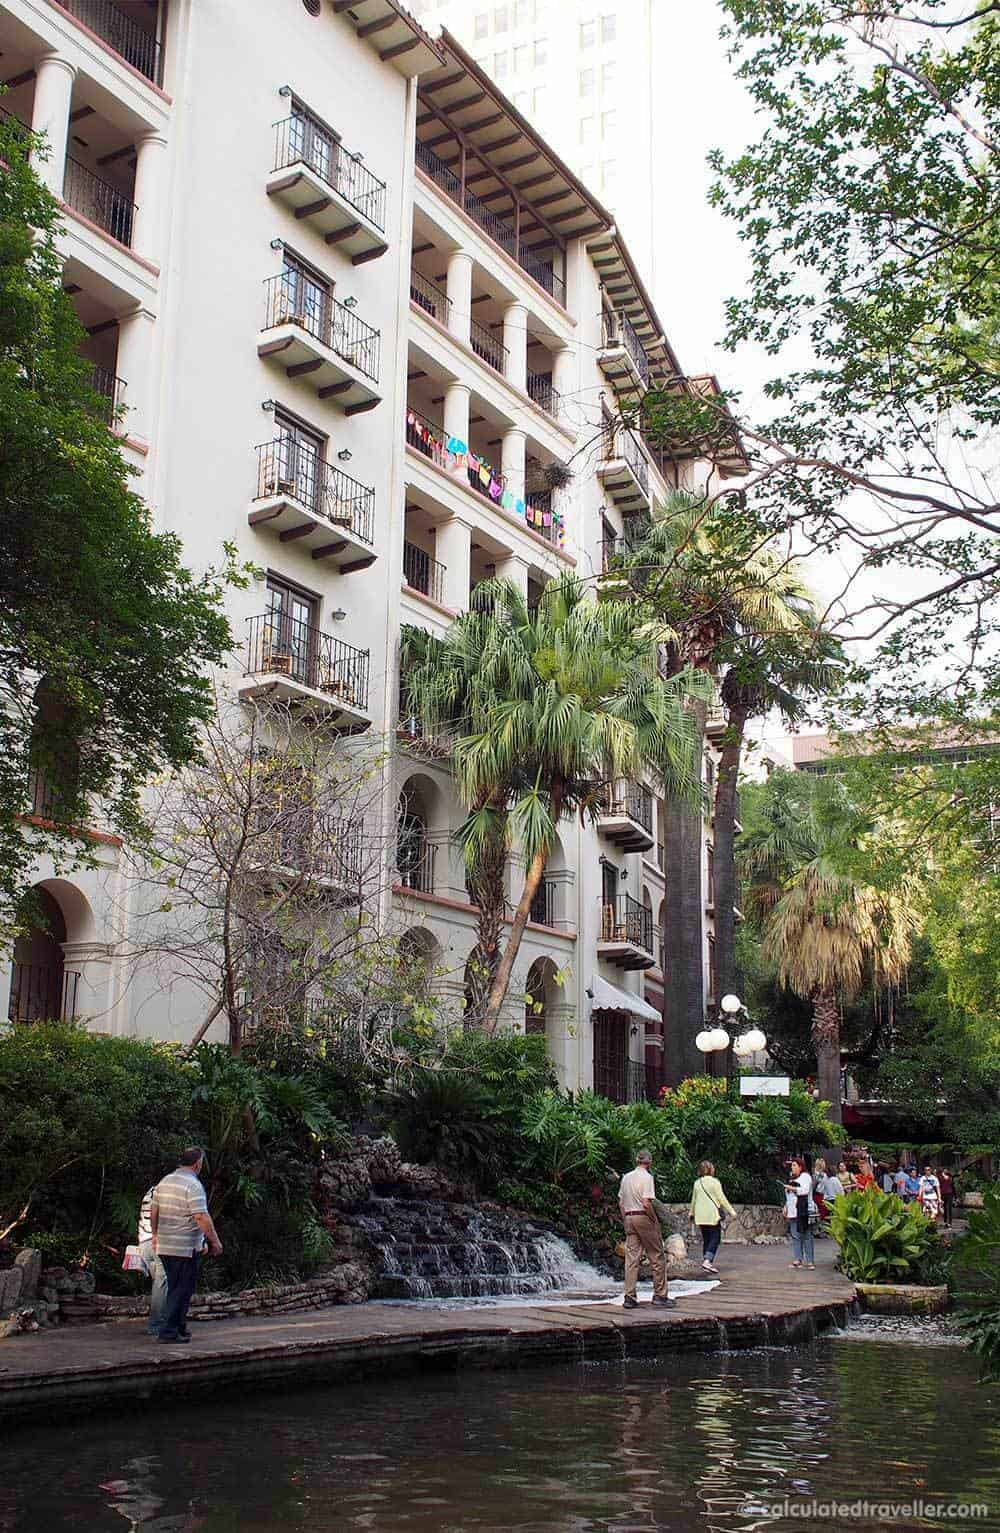 A Historical Stay on the River Walk in San Antonio Texas at the Omni La Maison del Rio Hotel. A review by Calculated Traveller